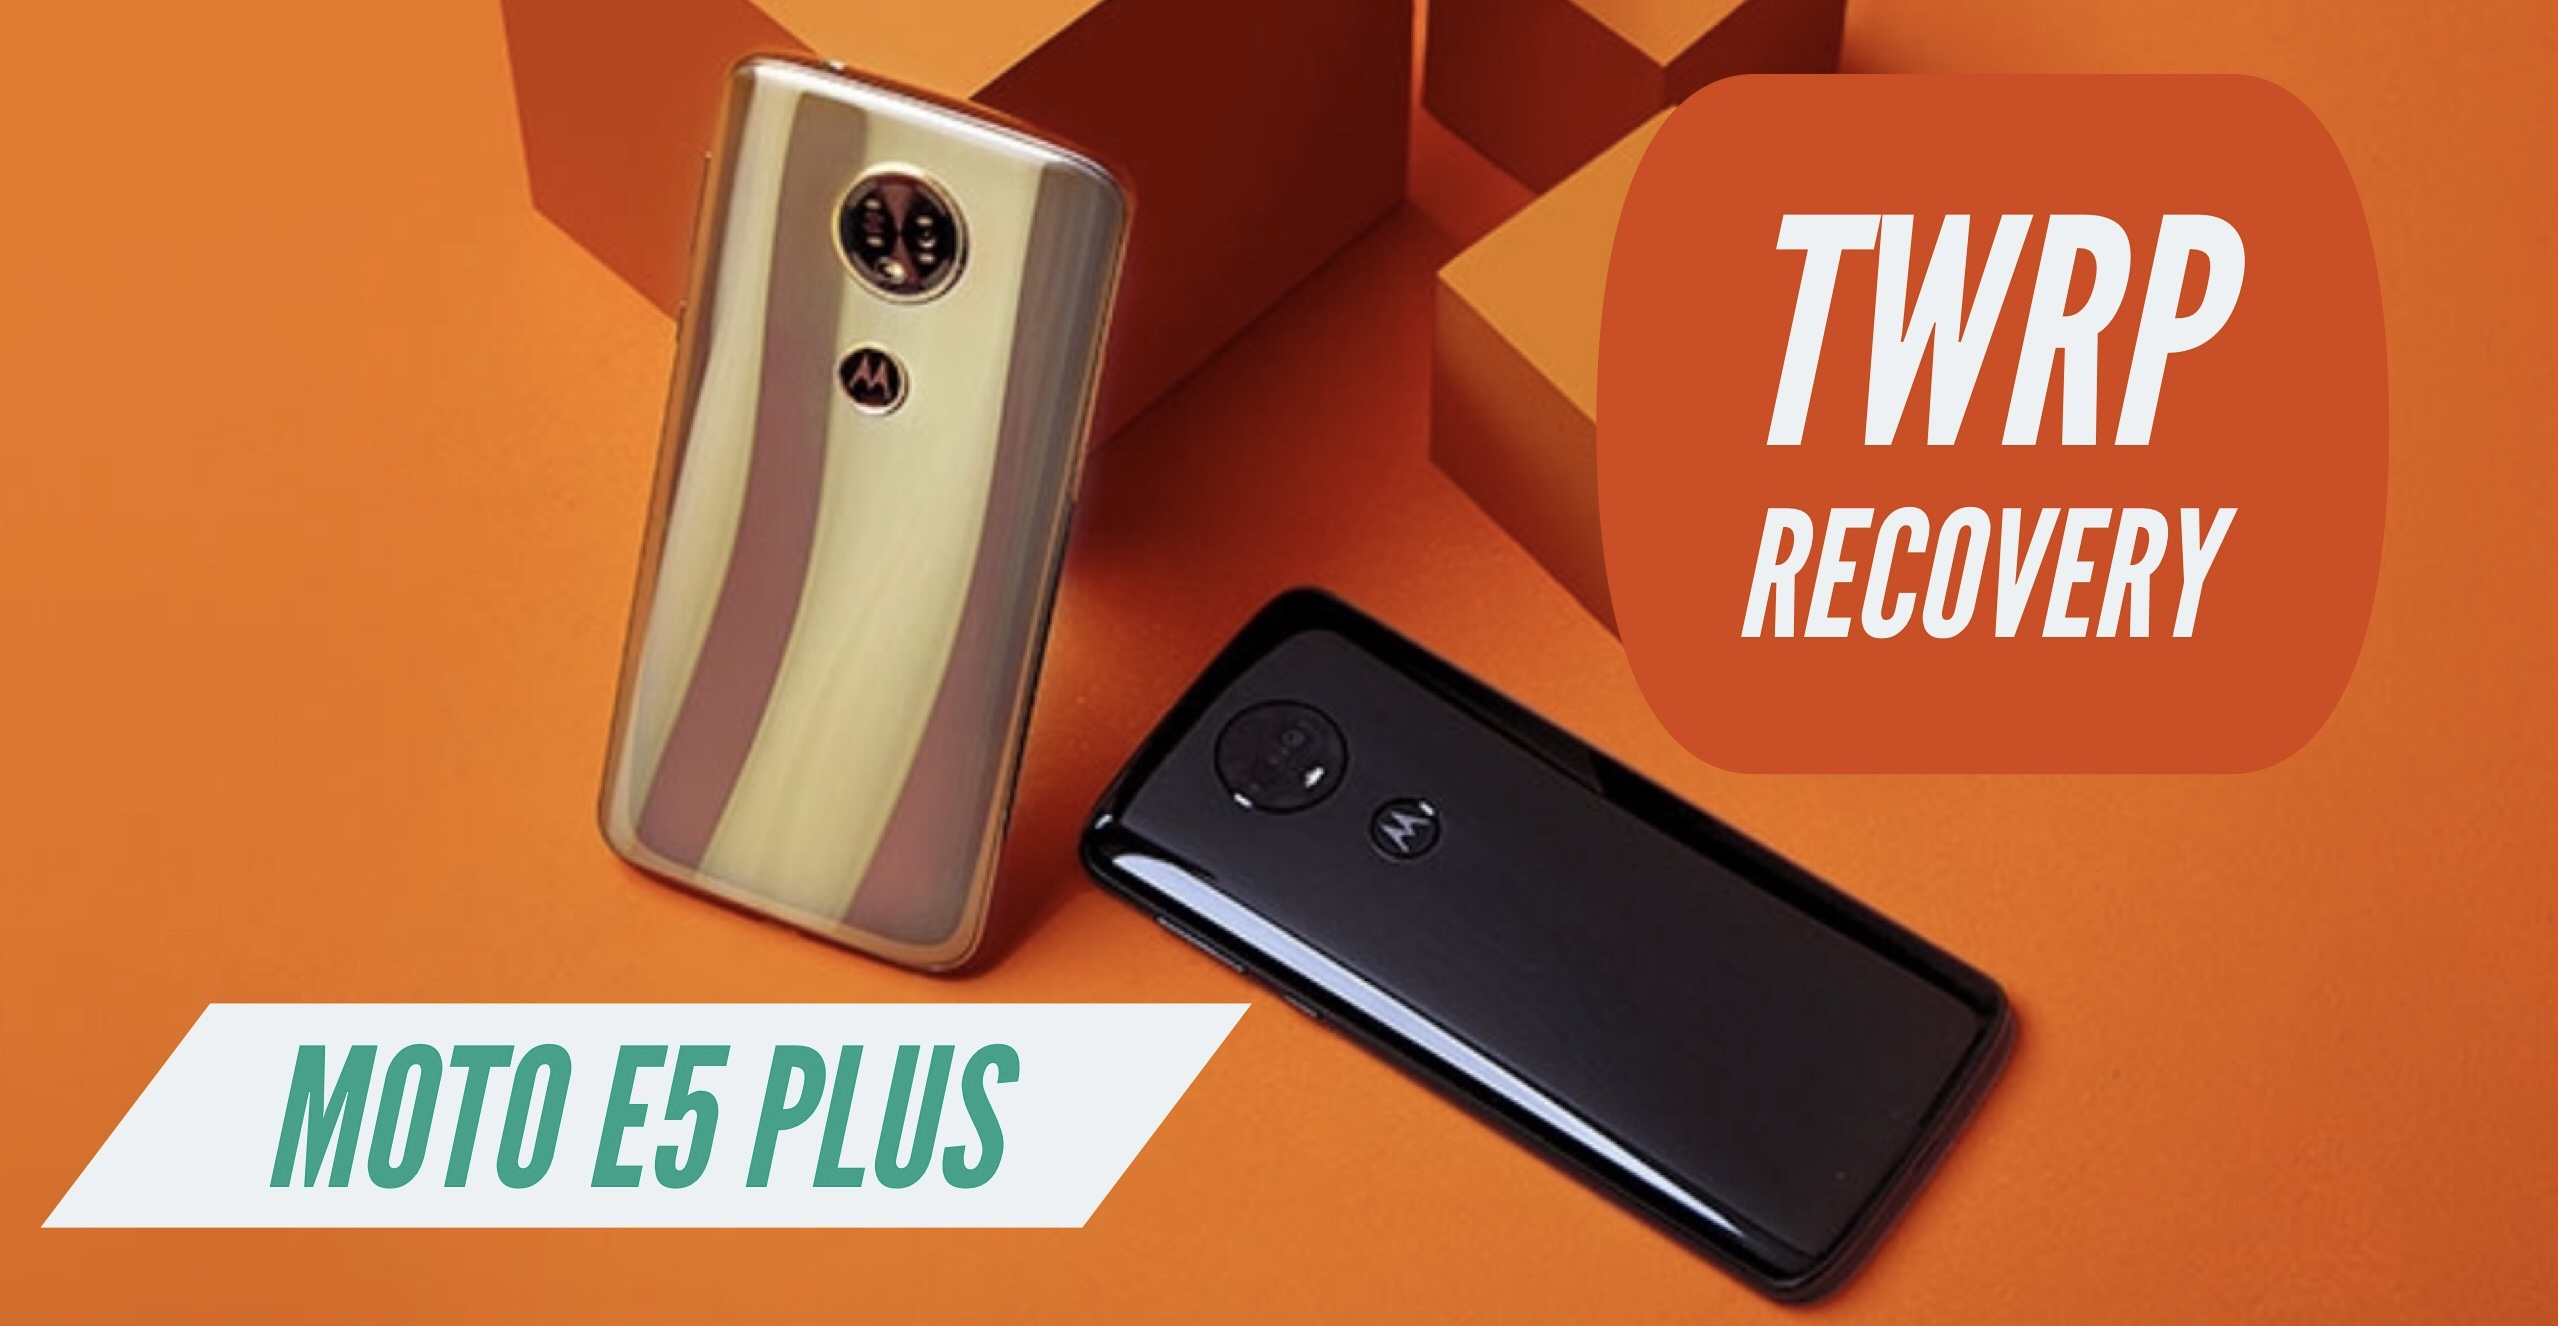 How to Install TWRP Recovery on Motorola Moto E5 Plus